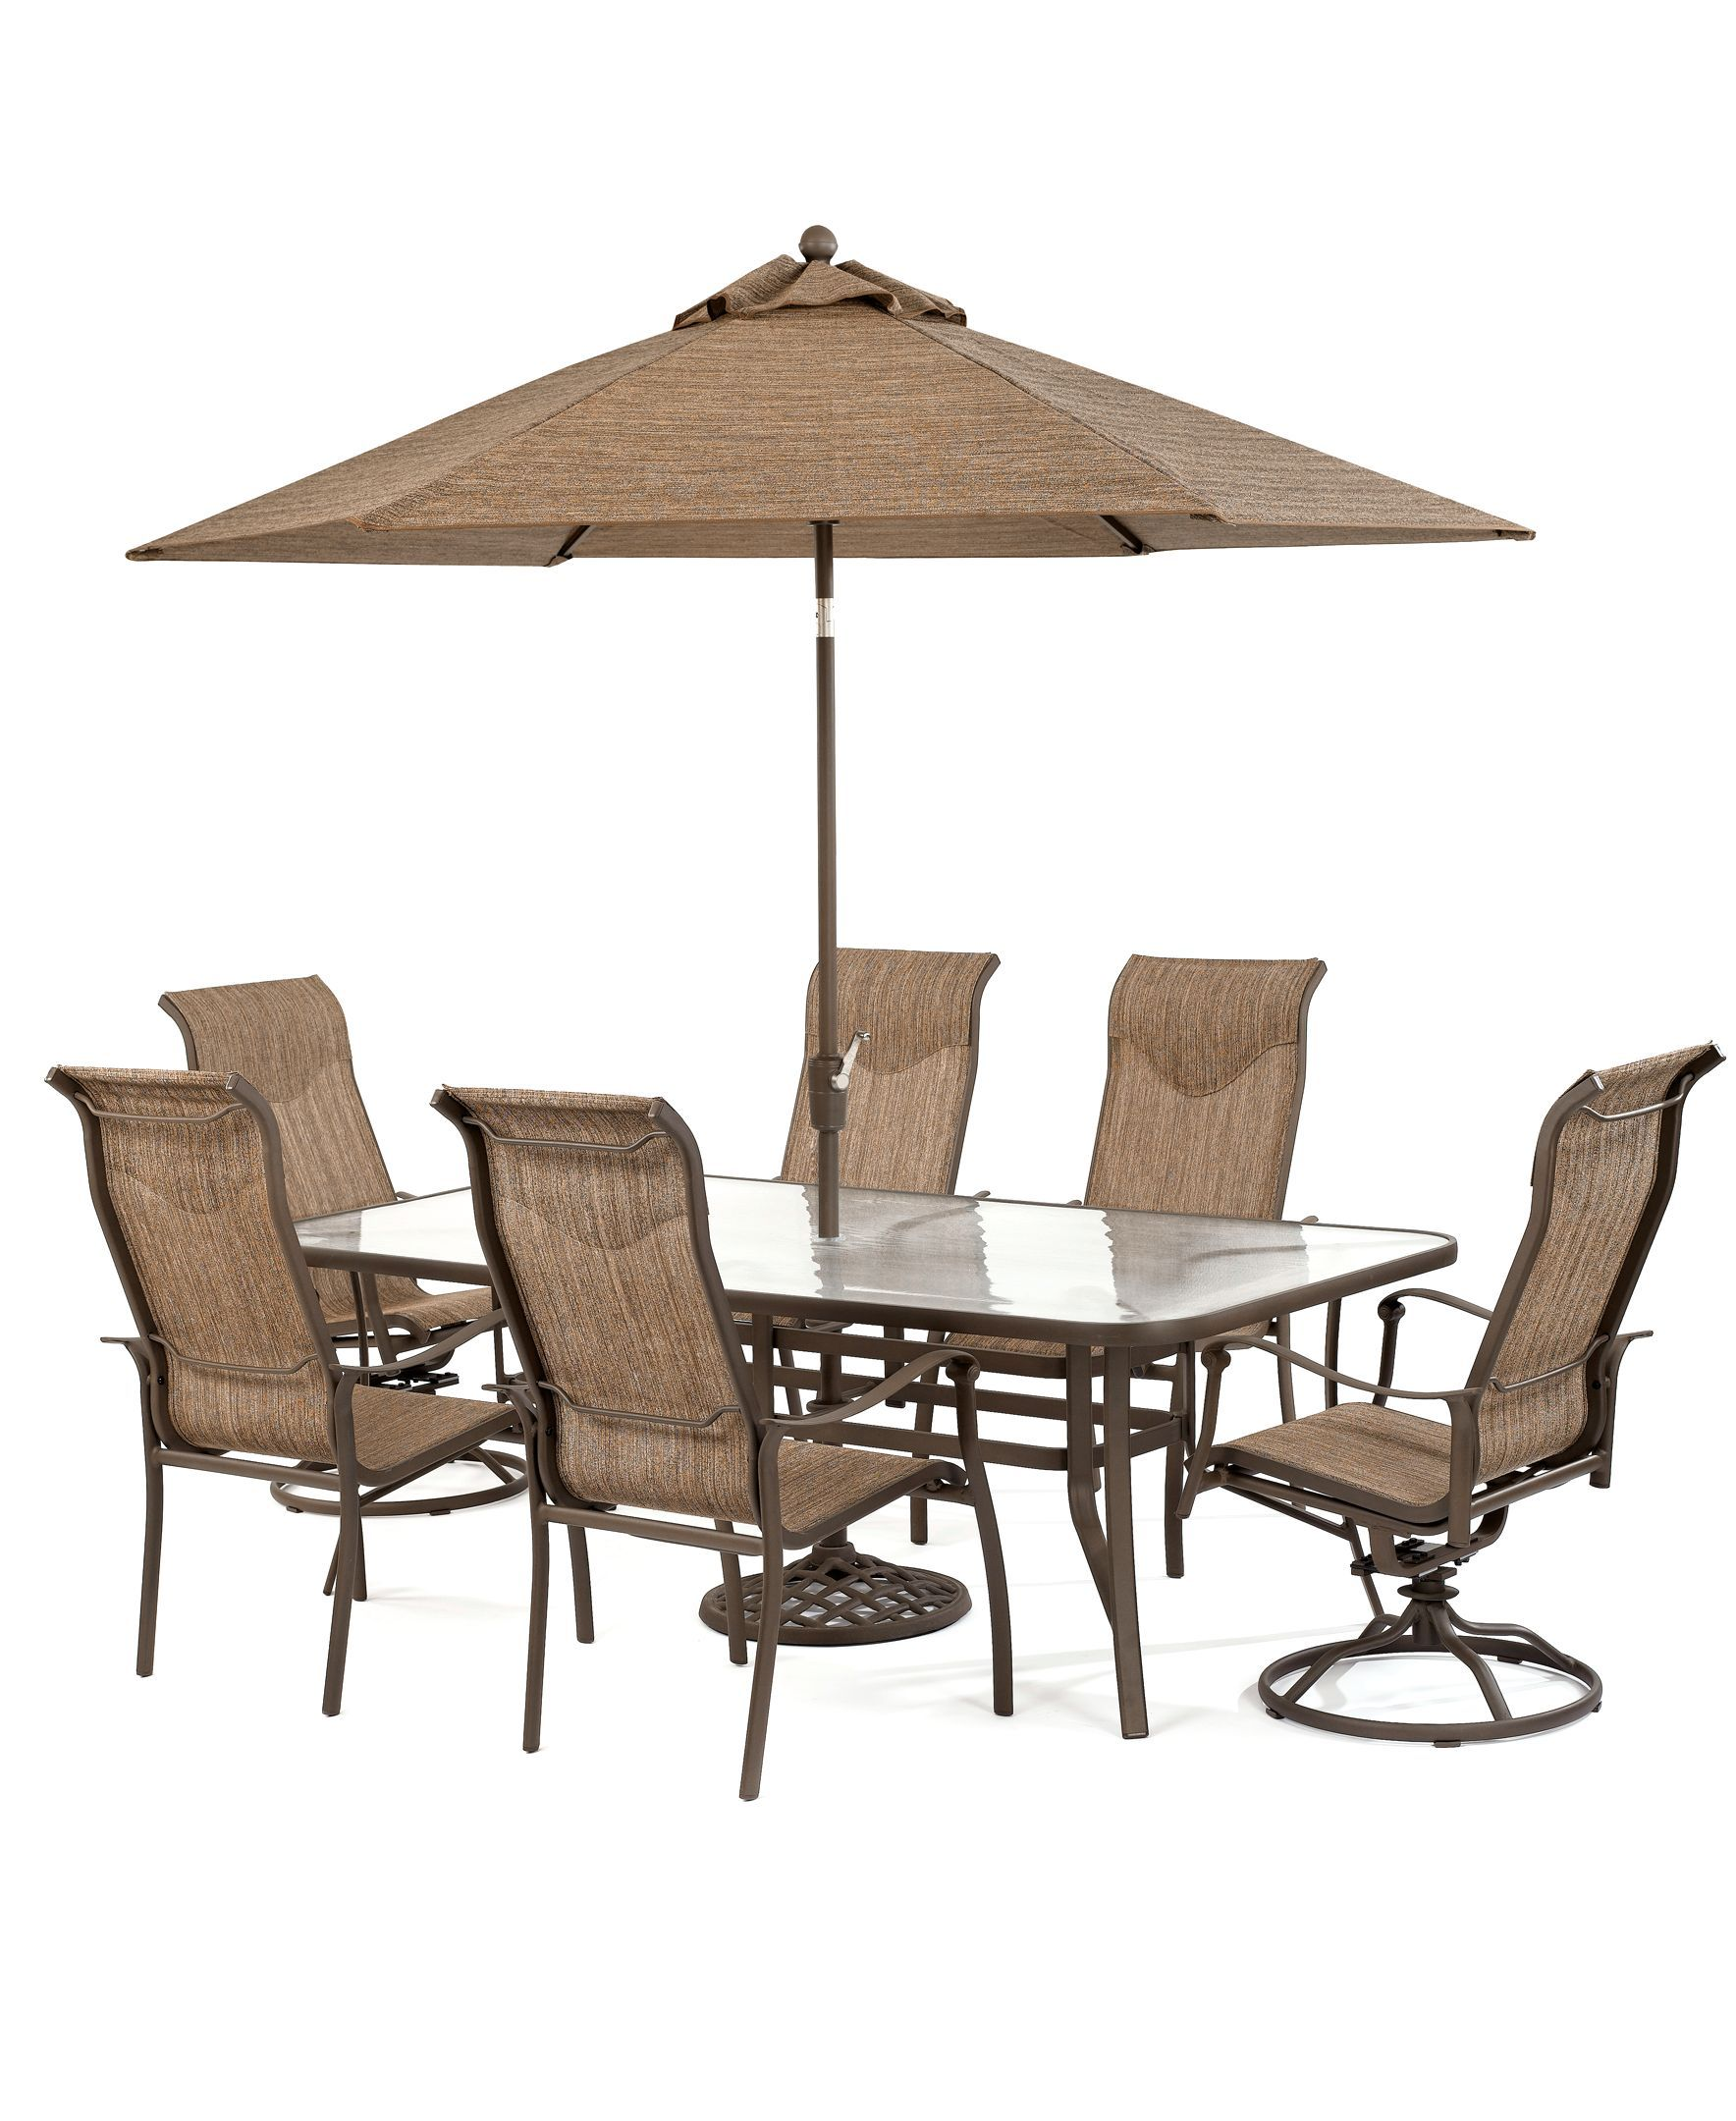 Oasis Outdoor 10 Piece Set 84 X 42 Dining Table 4 Dining